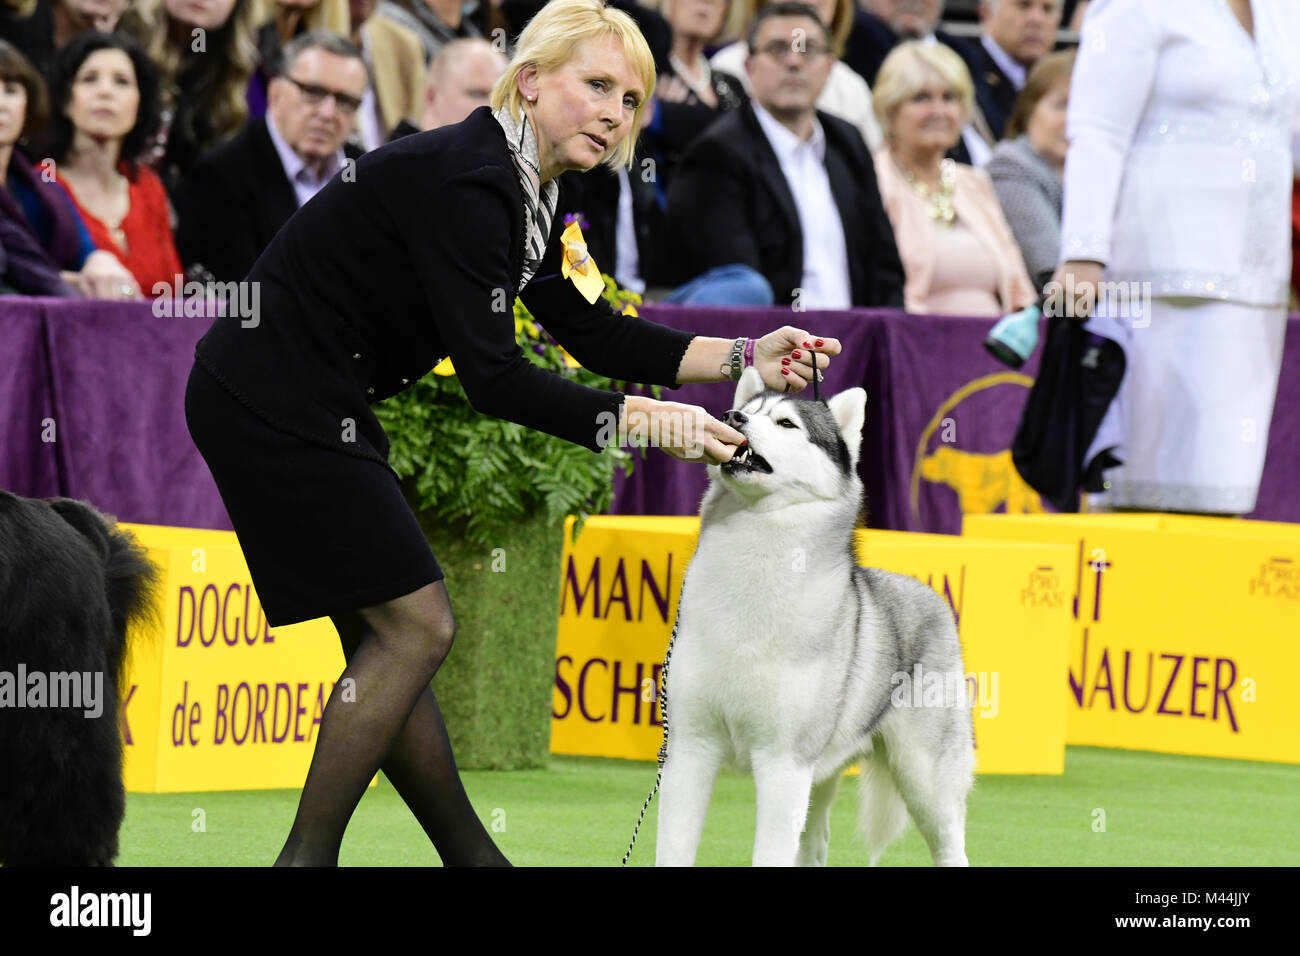 New York City, United States. 13th Feb, 2018. Day two of the the 142nd Annual Westminster Kennel Club Dog Show took Stock Photo